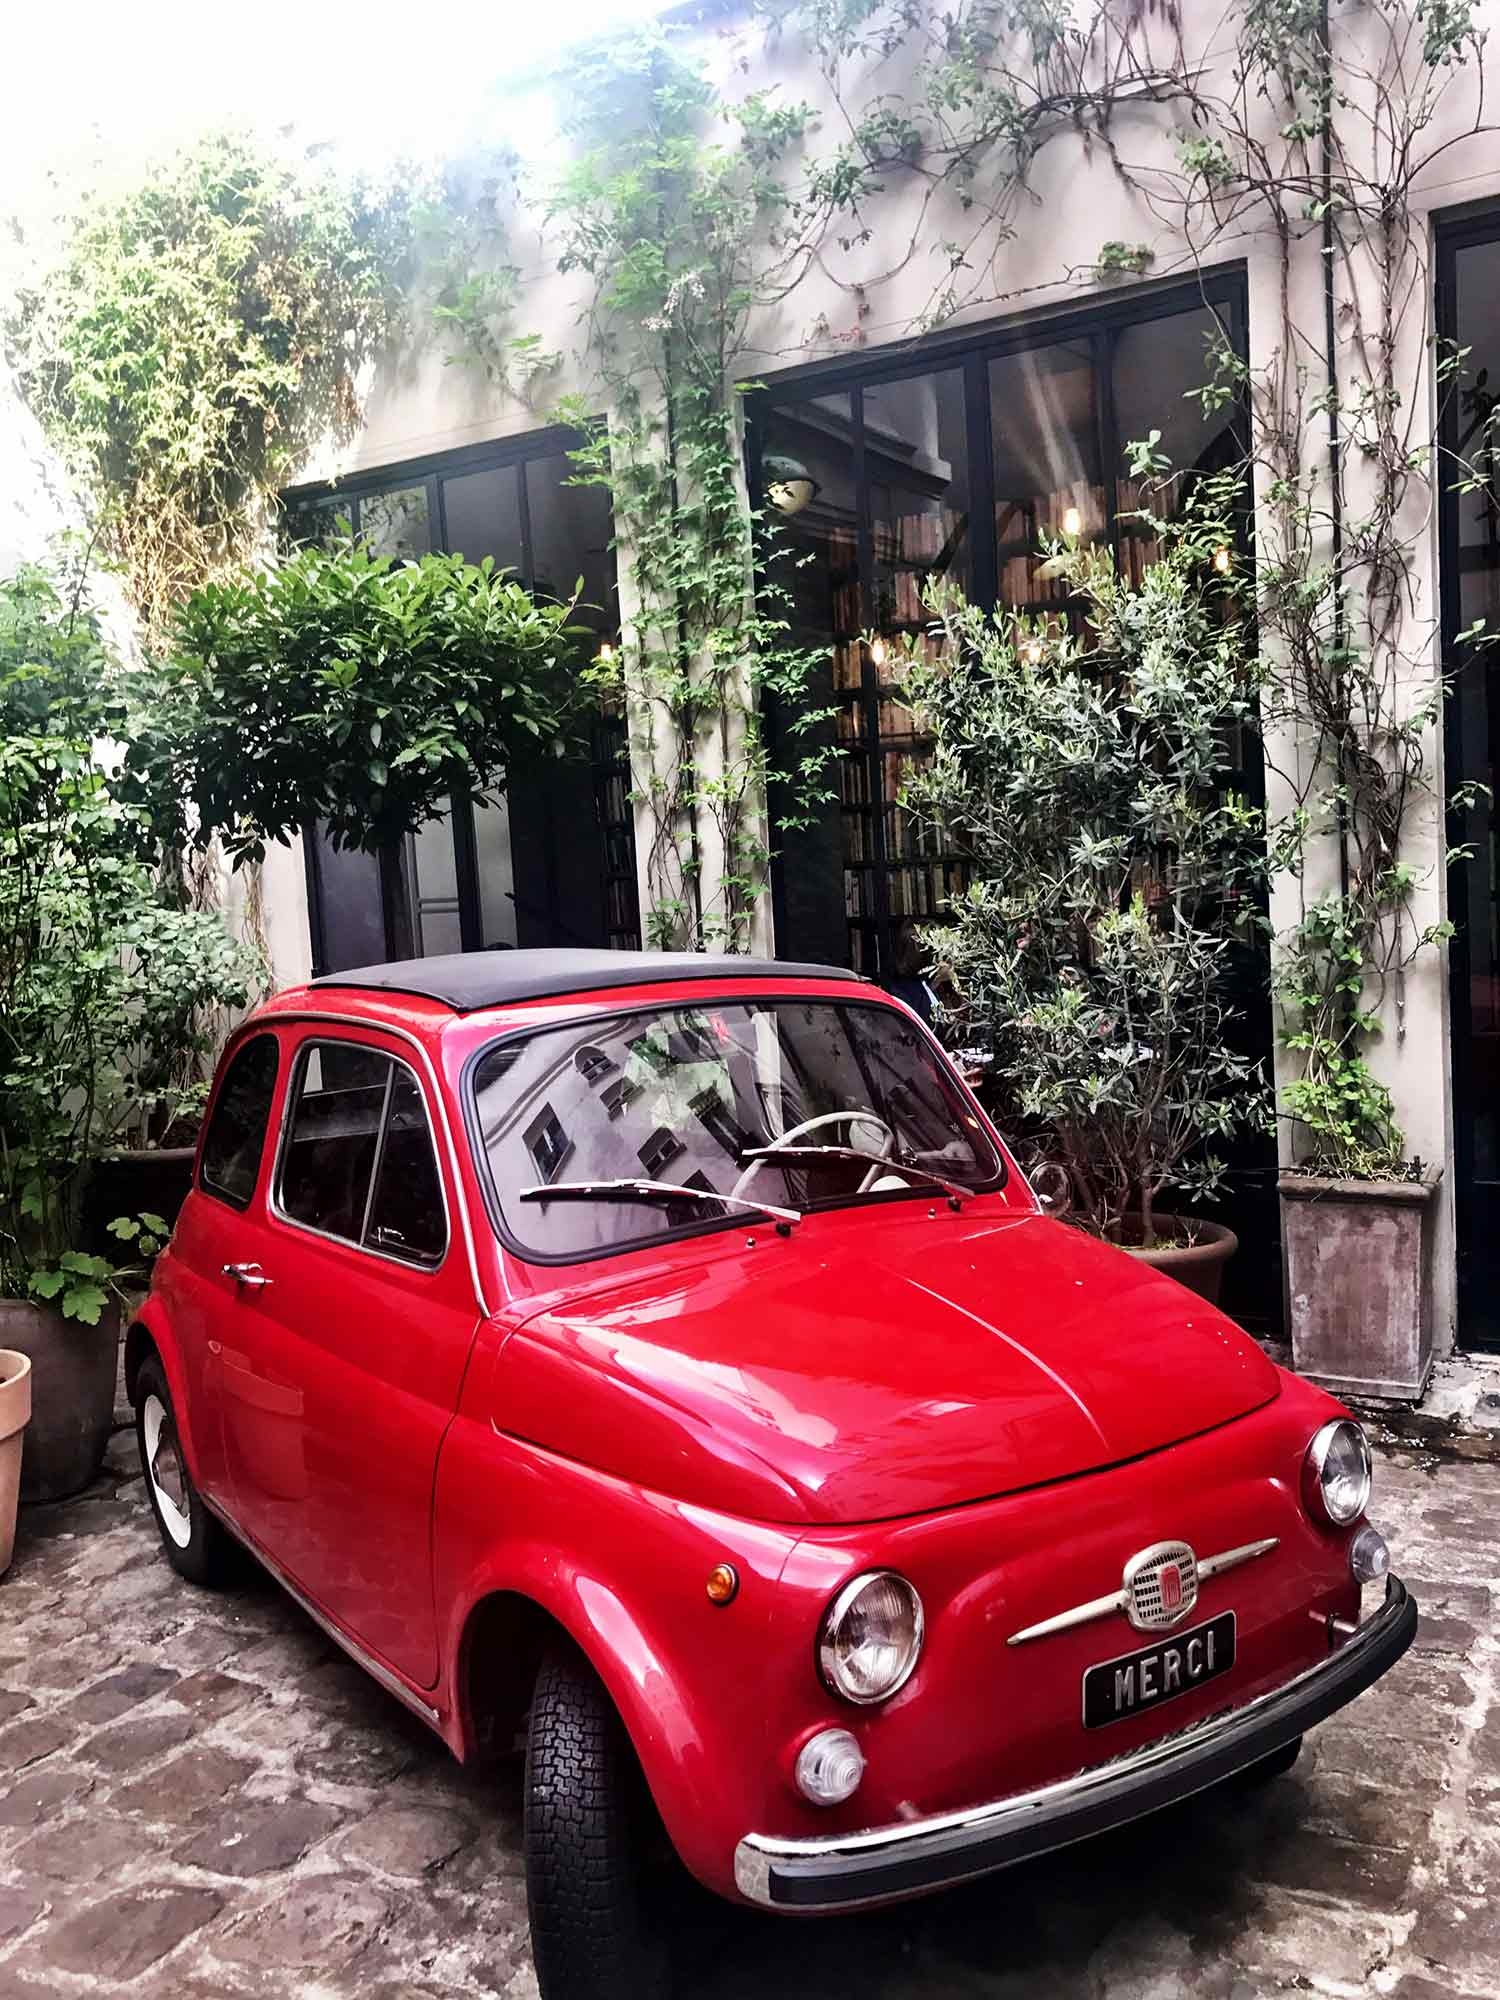 A vintage red Fiat sits in a courtyard surrounded by vines